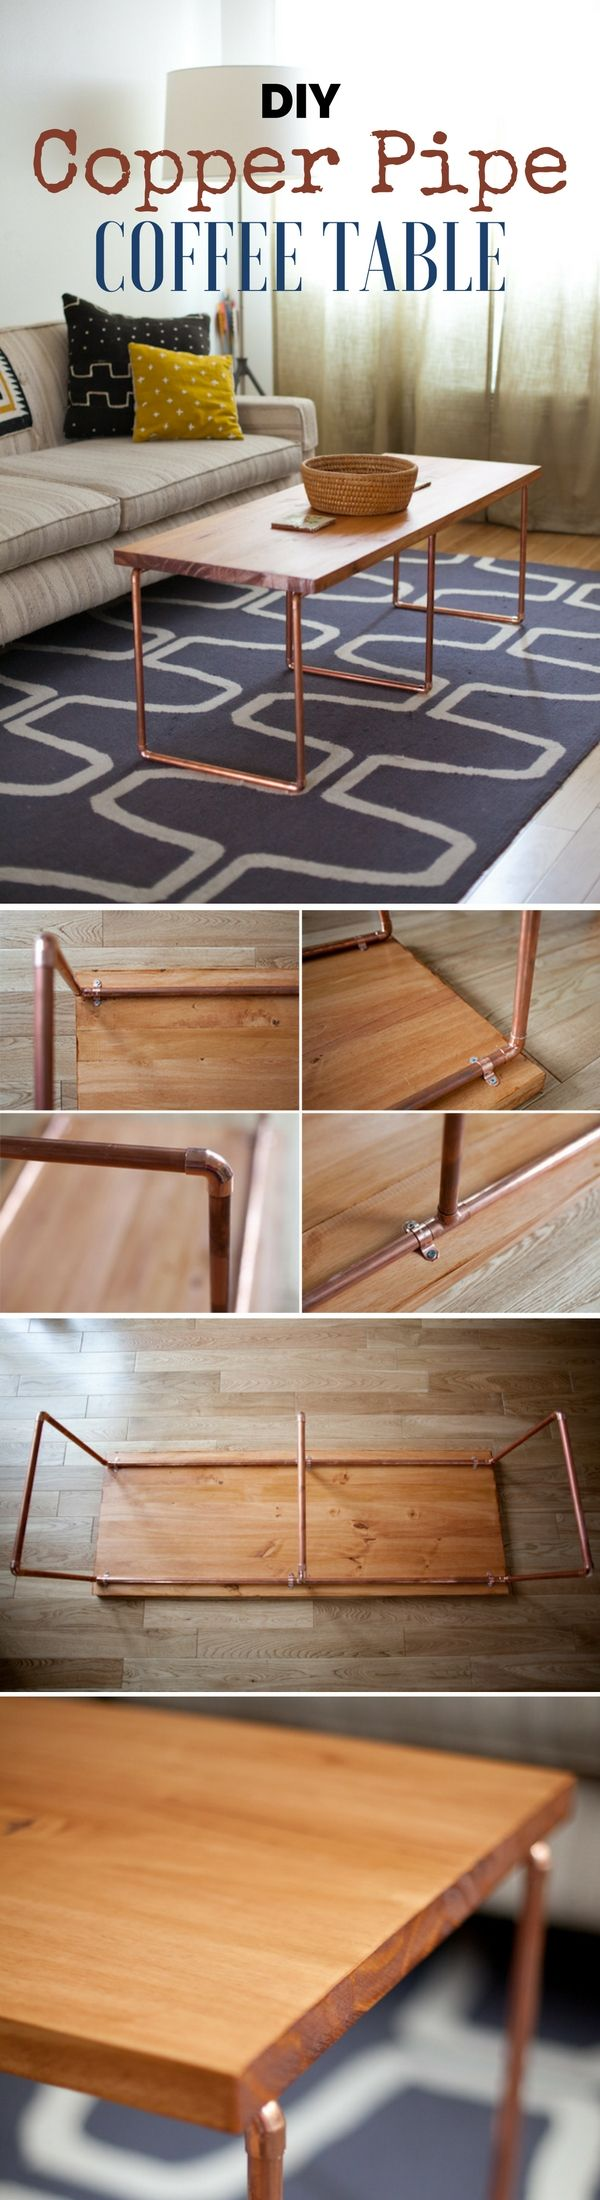 5 Easy Diy Coffee Table Projects Copper Diy Coffee Table Easy